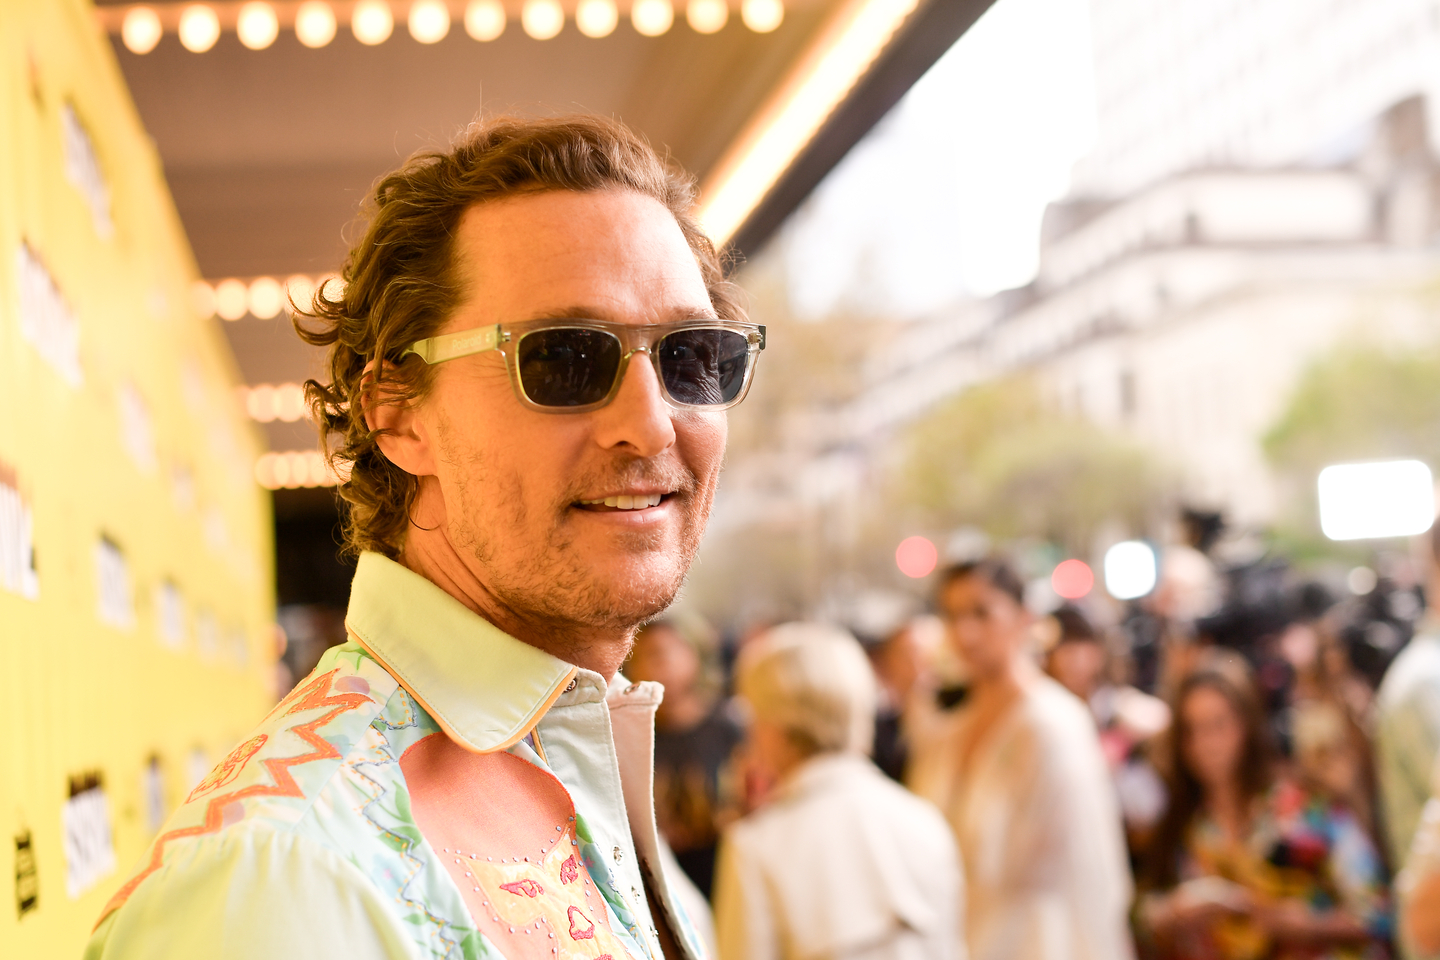 Matthew McConaughey attends The Beach Bum Premiere at the Paramount Theatre.